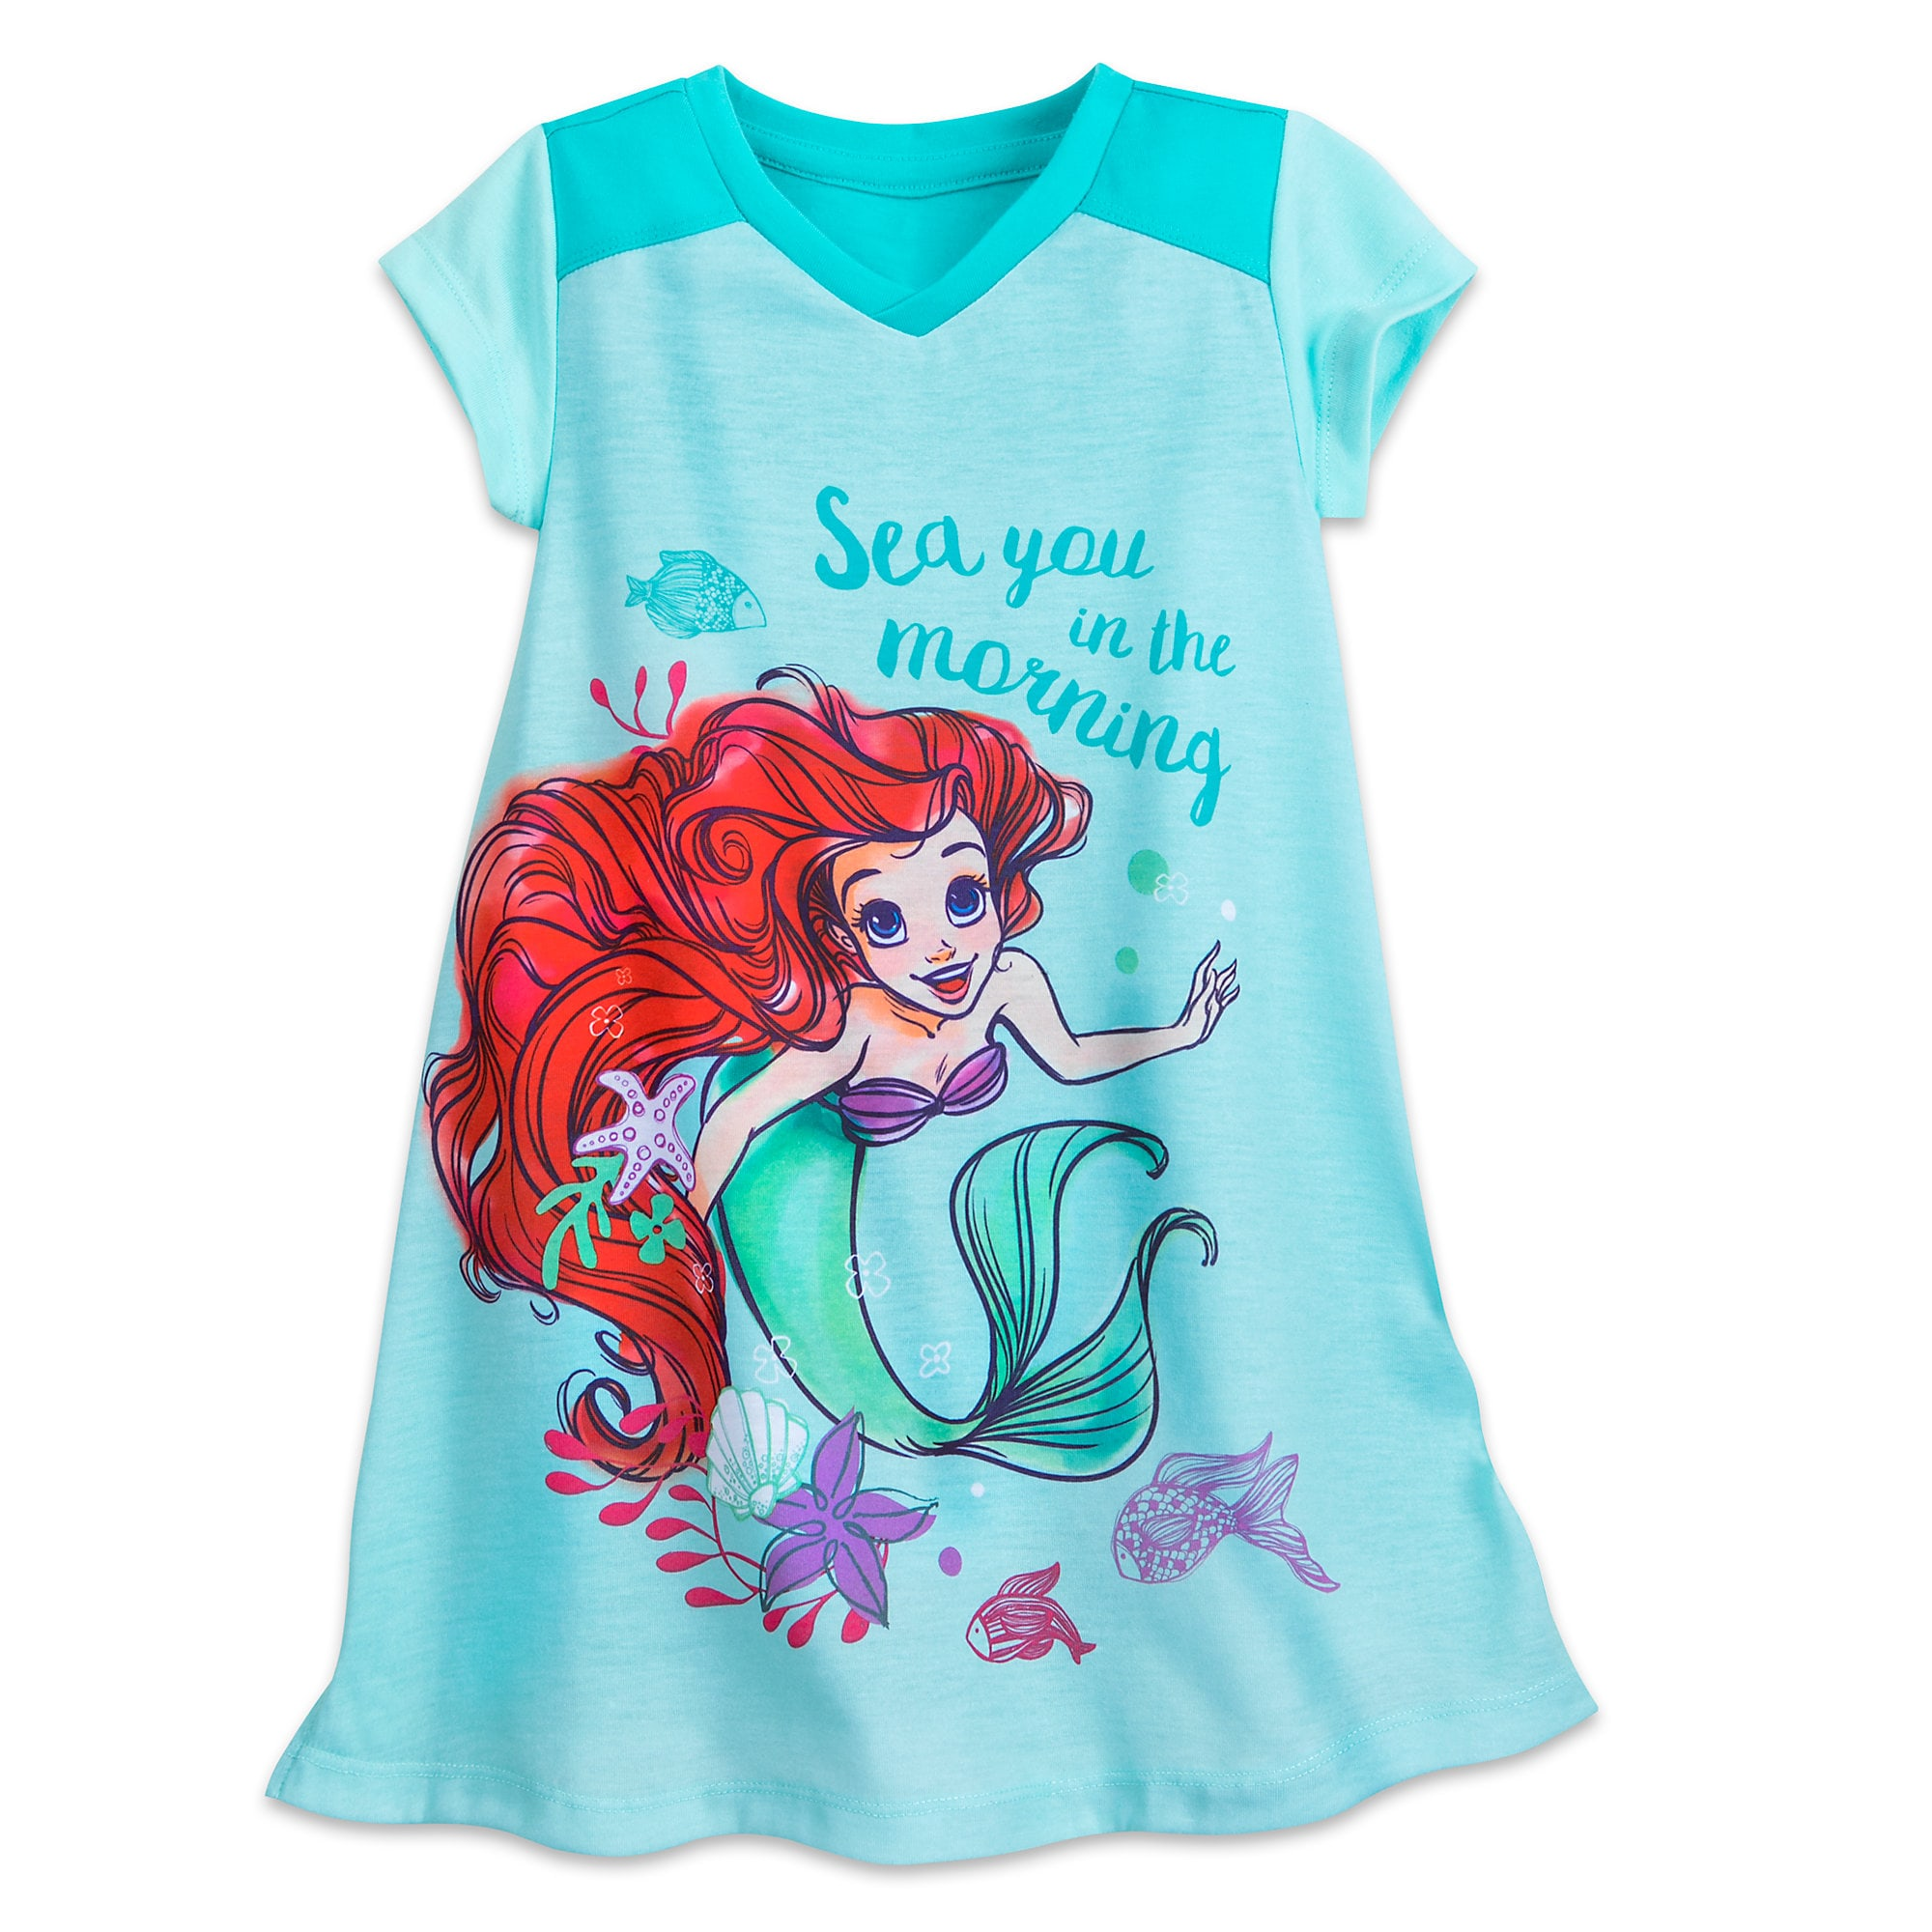 a99f13d9b8 Ariel Nightshirt for Girls